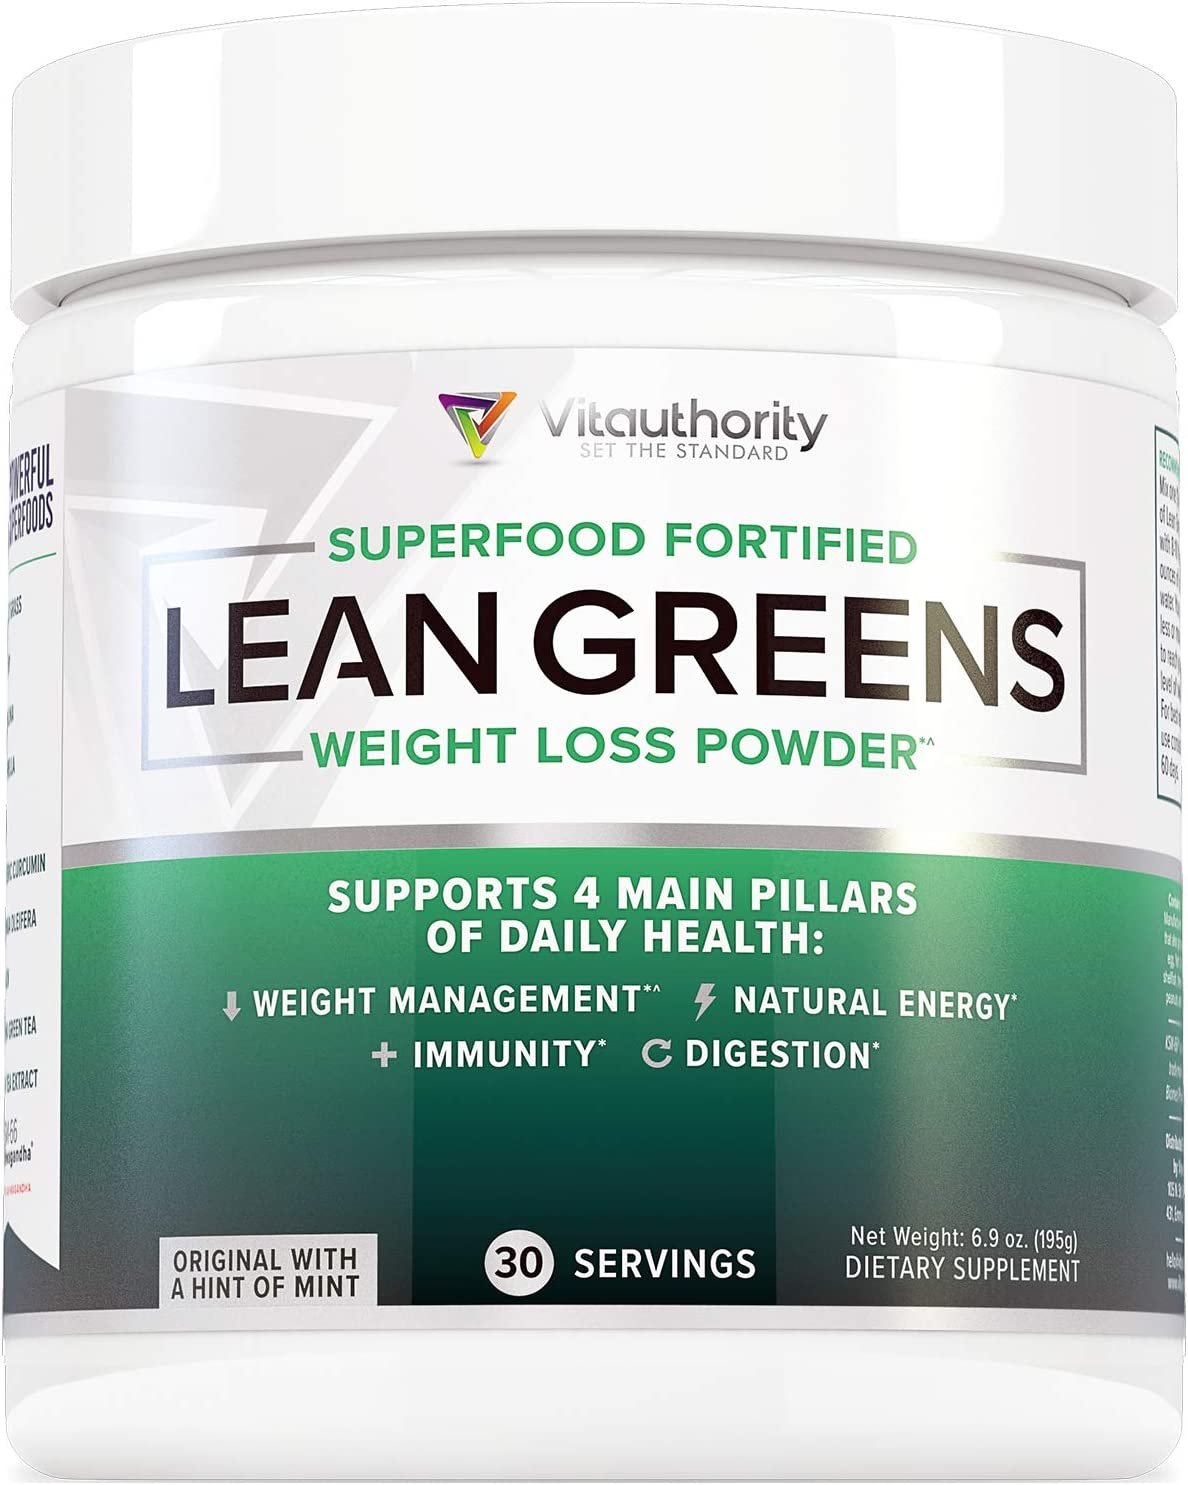 Lean Greens Superfood Fortified Weight Loss Powder: 11 Immunity Boosting All-Natural Greens Superfoods + Caffeine-Free Thermogenic Ingredients for Healthy Weight Management, 30 Servings